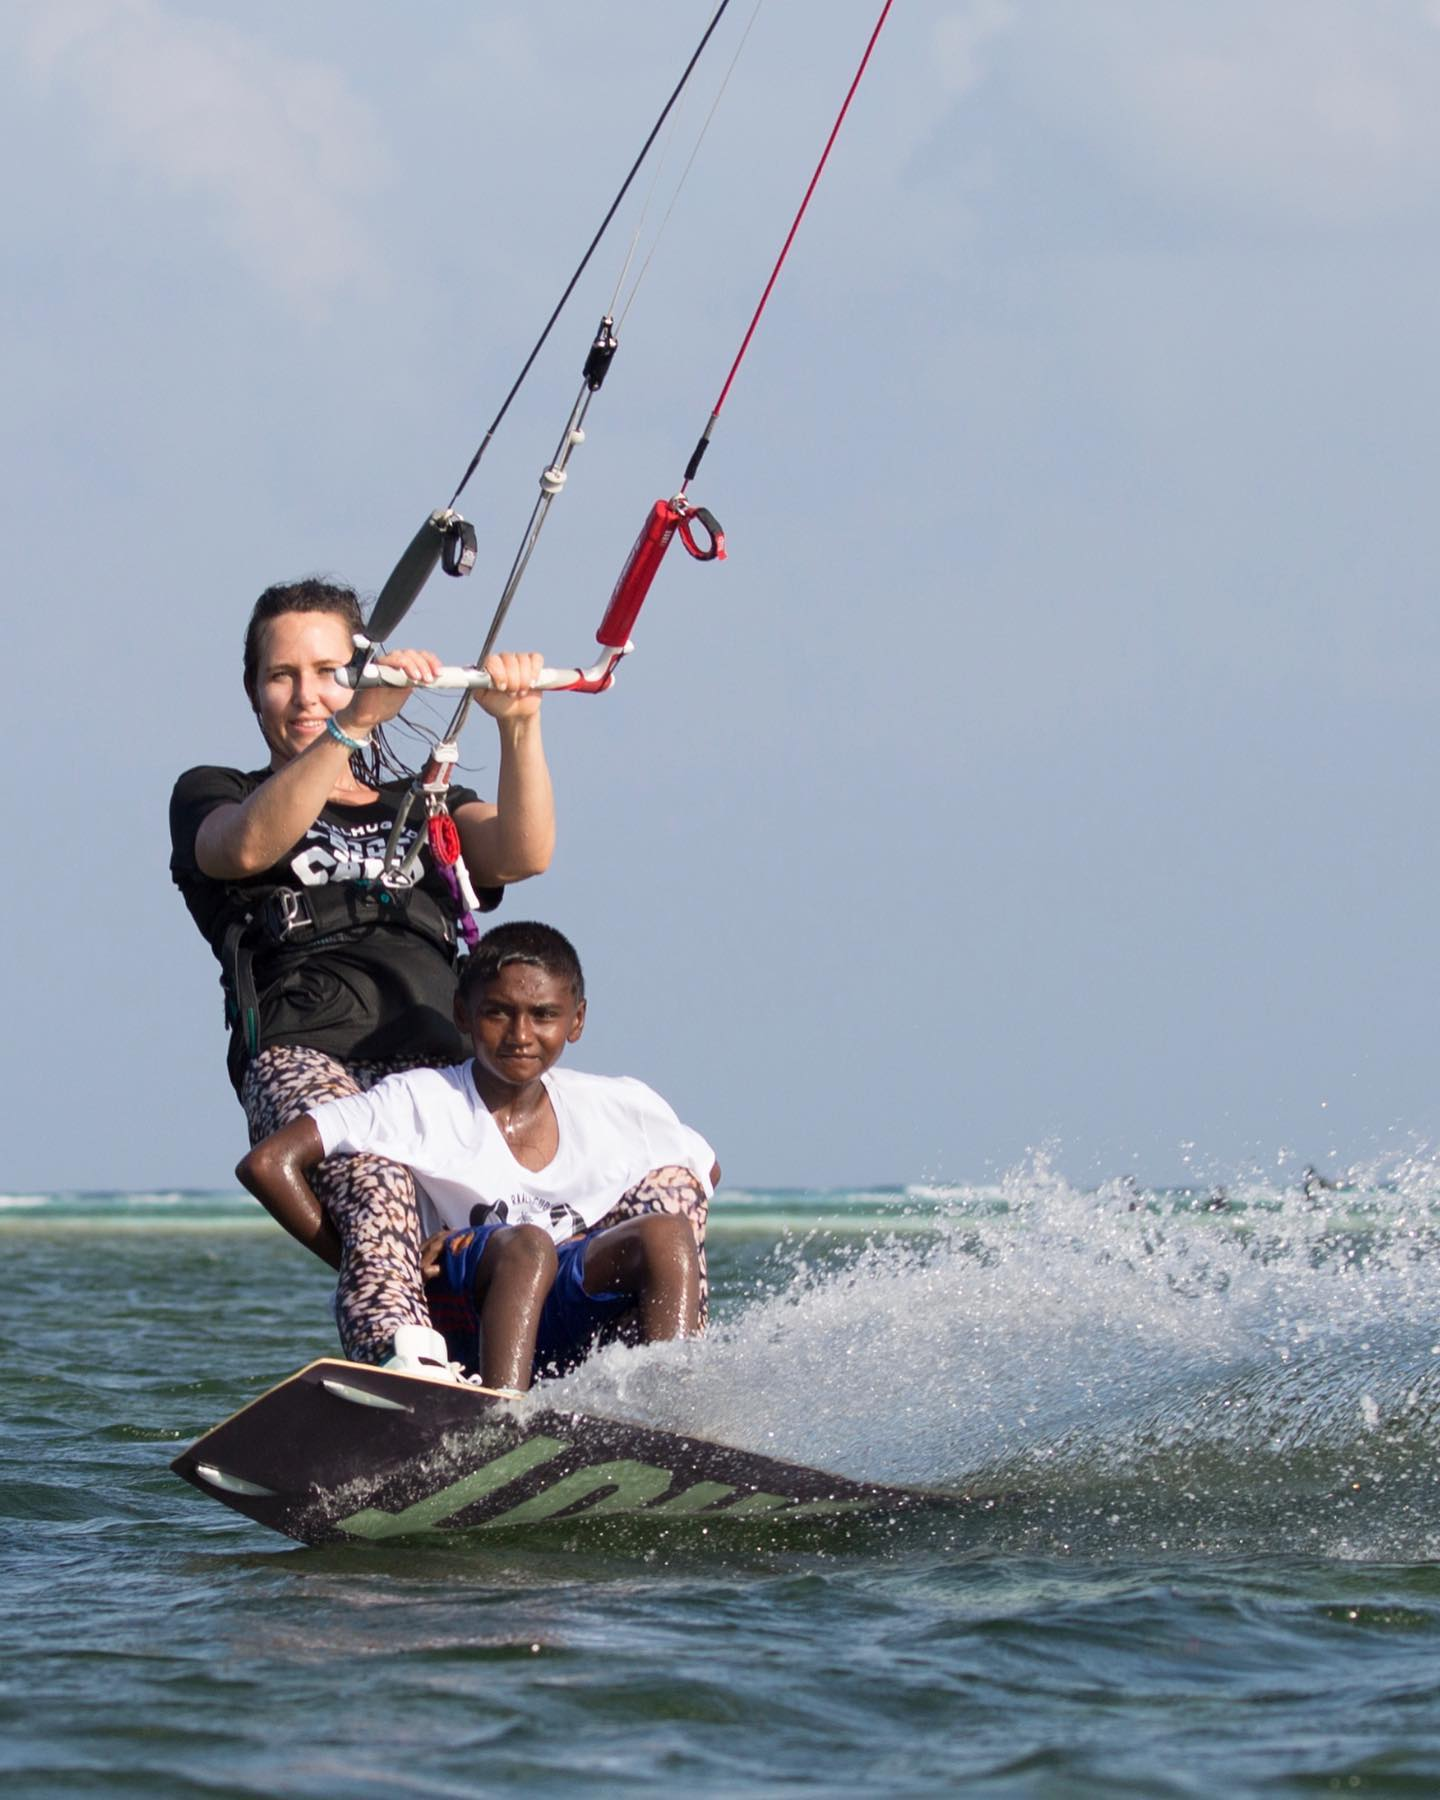 karolina riding her kite with a young Maldivian kid standing on the board holding her legs. They're both smiling and looking relaxed.